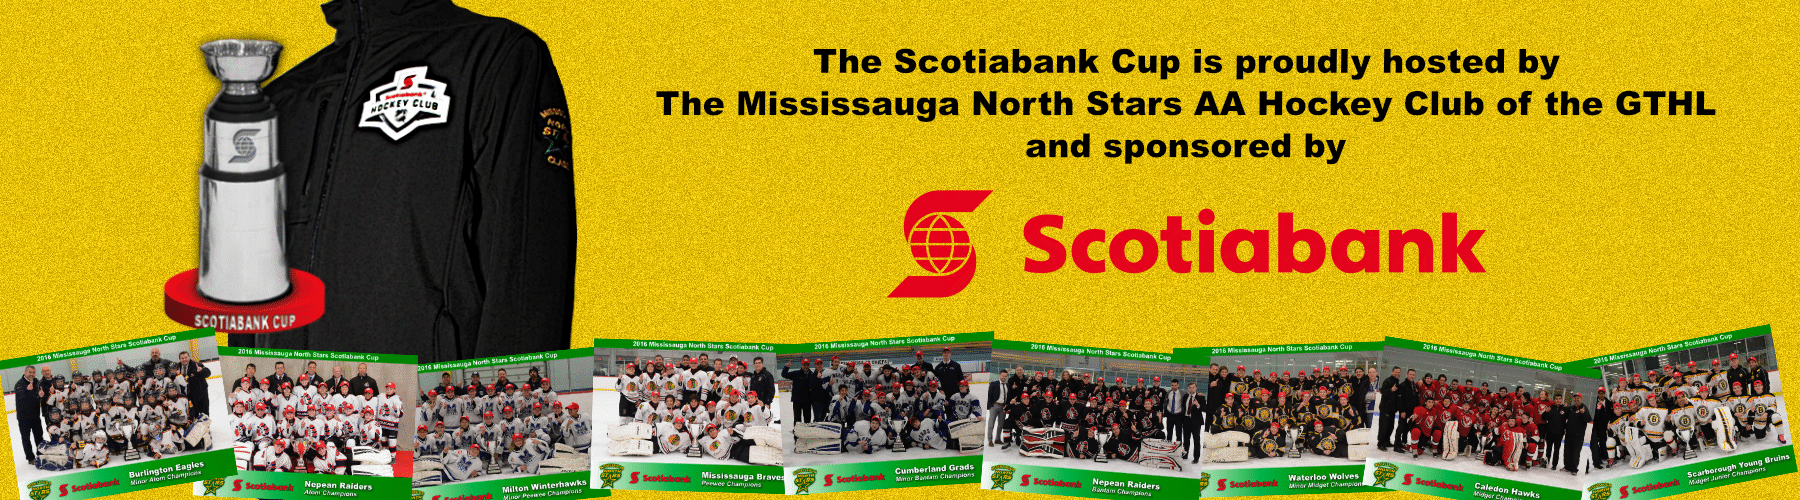 Scotiabank Cup sponsored by Scotiabank